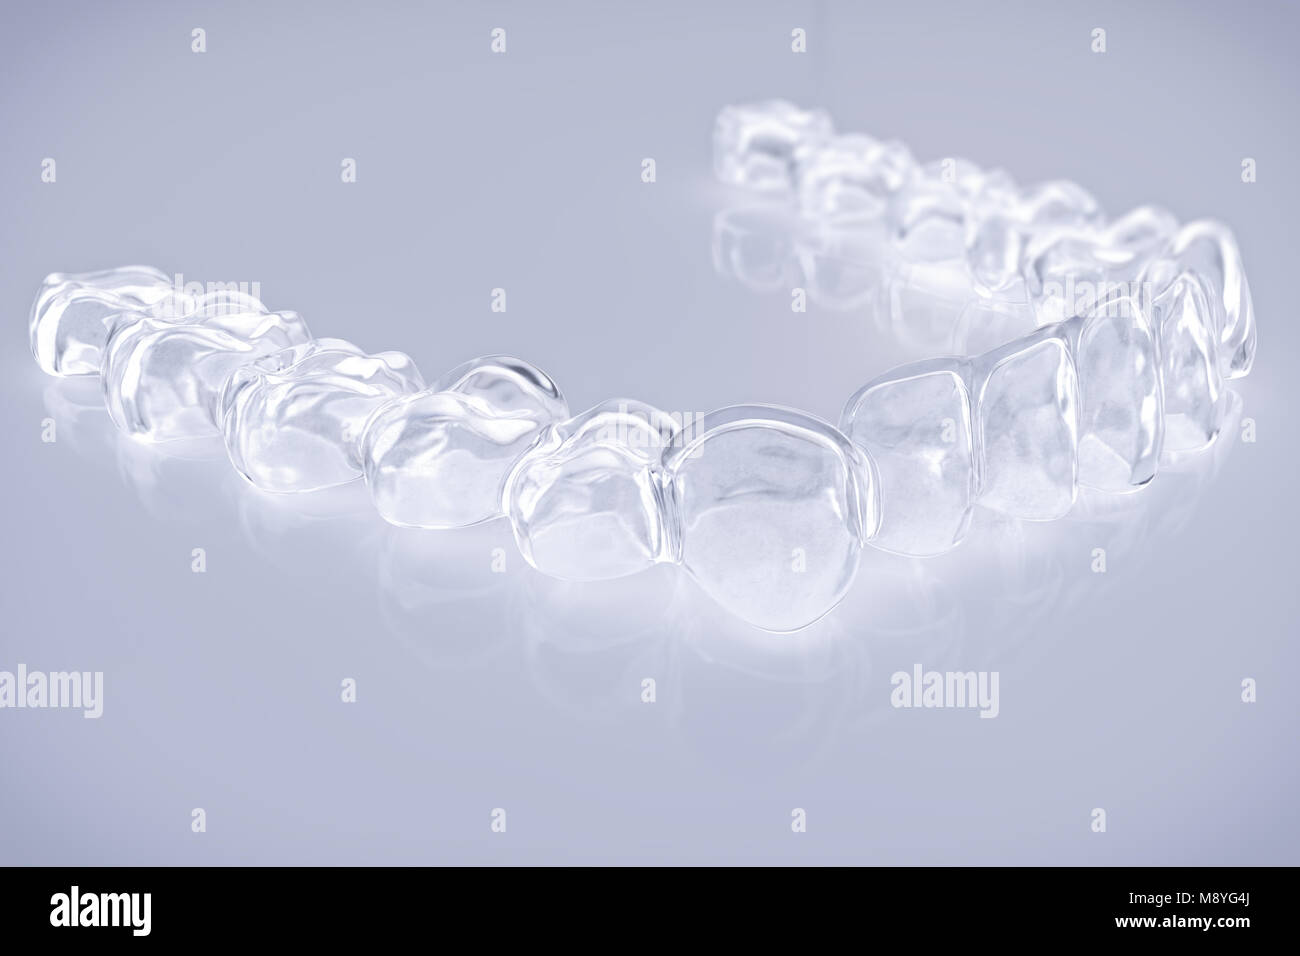 Invisible aligner, braces - 3D Rendering - Stock Image